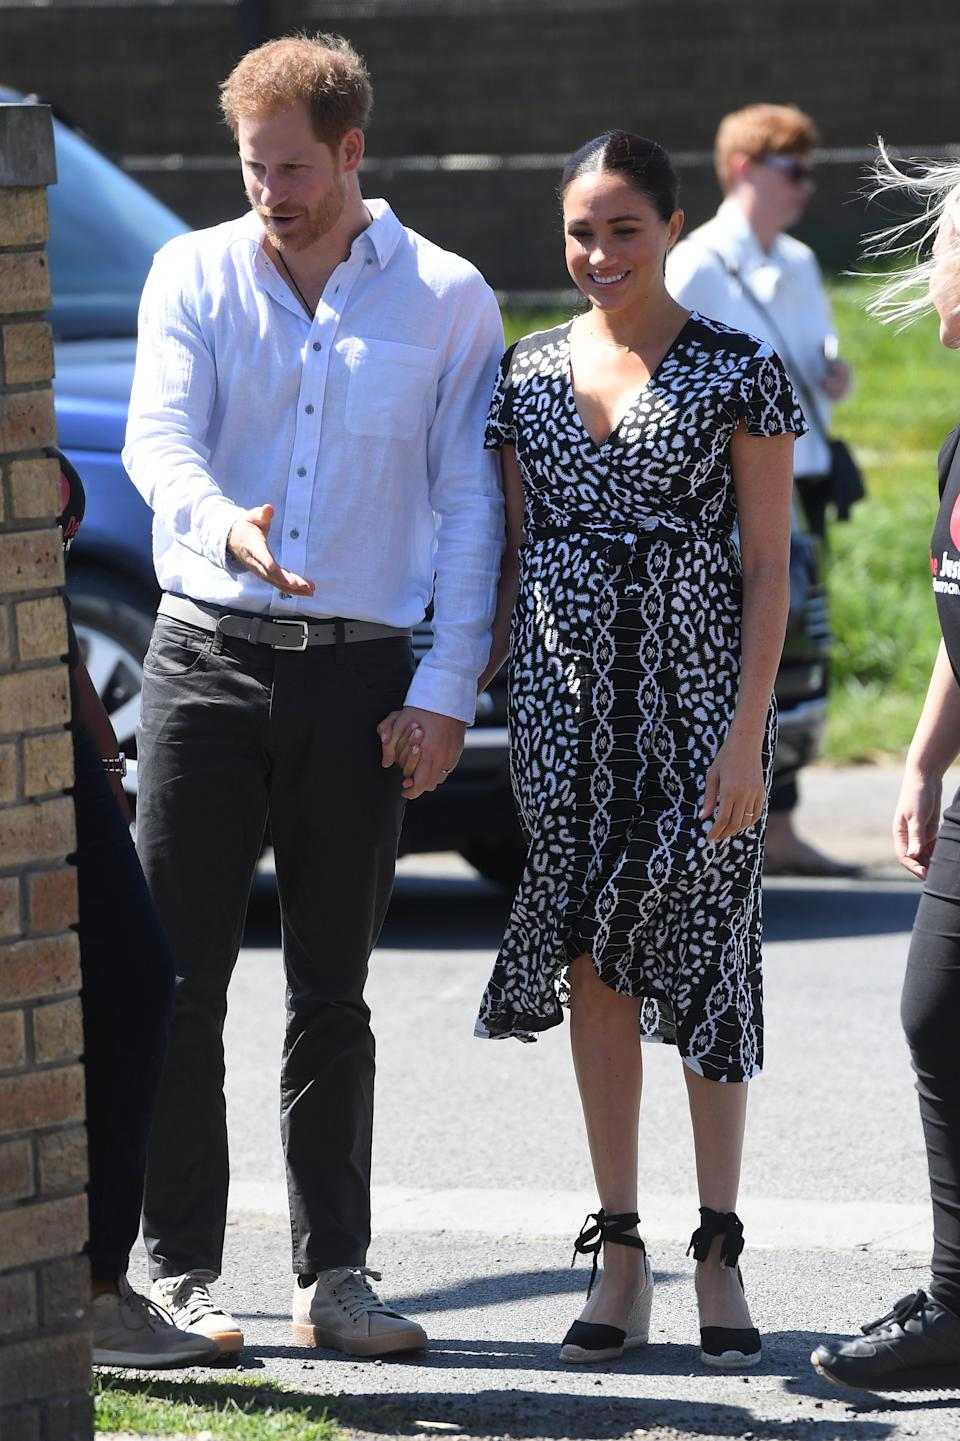 """The Duchess arrived at her first engagement in Cape Town with Prince Harry wearing a £69 monochrome wrap dress by Mayamiko, a sustainable and ethical African label. The sold-out dress is made using traditional African techniques and locally-printed fabrics. A pair of black canvas wedge espadrilles by Castaner completed the look. The shoes are available to purchase for £80. <a href=""""https://fave.co/2m777eL"""" rel=""""nofollow noopener"""" target=""""_blank"""" data-ylk=""""slk:Shop now"""" class=""""link rapid-noclick-resp""""><strong>Shop now</strong></a><strong>. </strong><em>[Photo: Getty Images]</em>"""